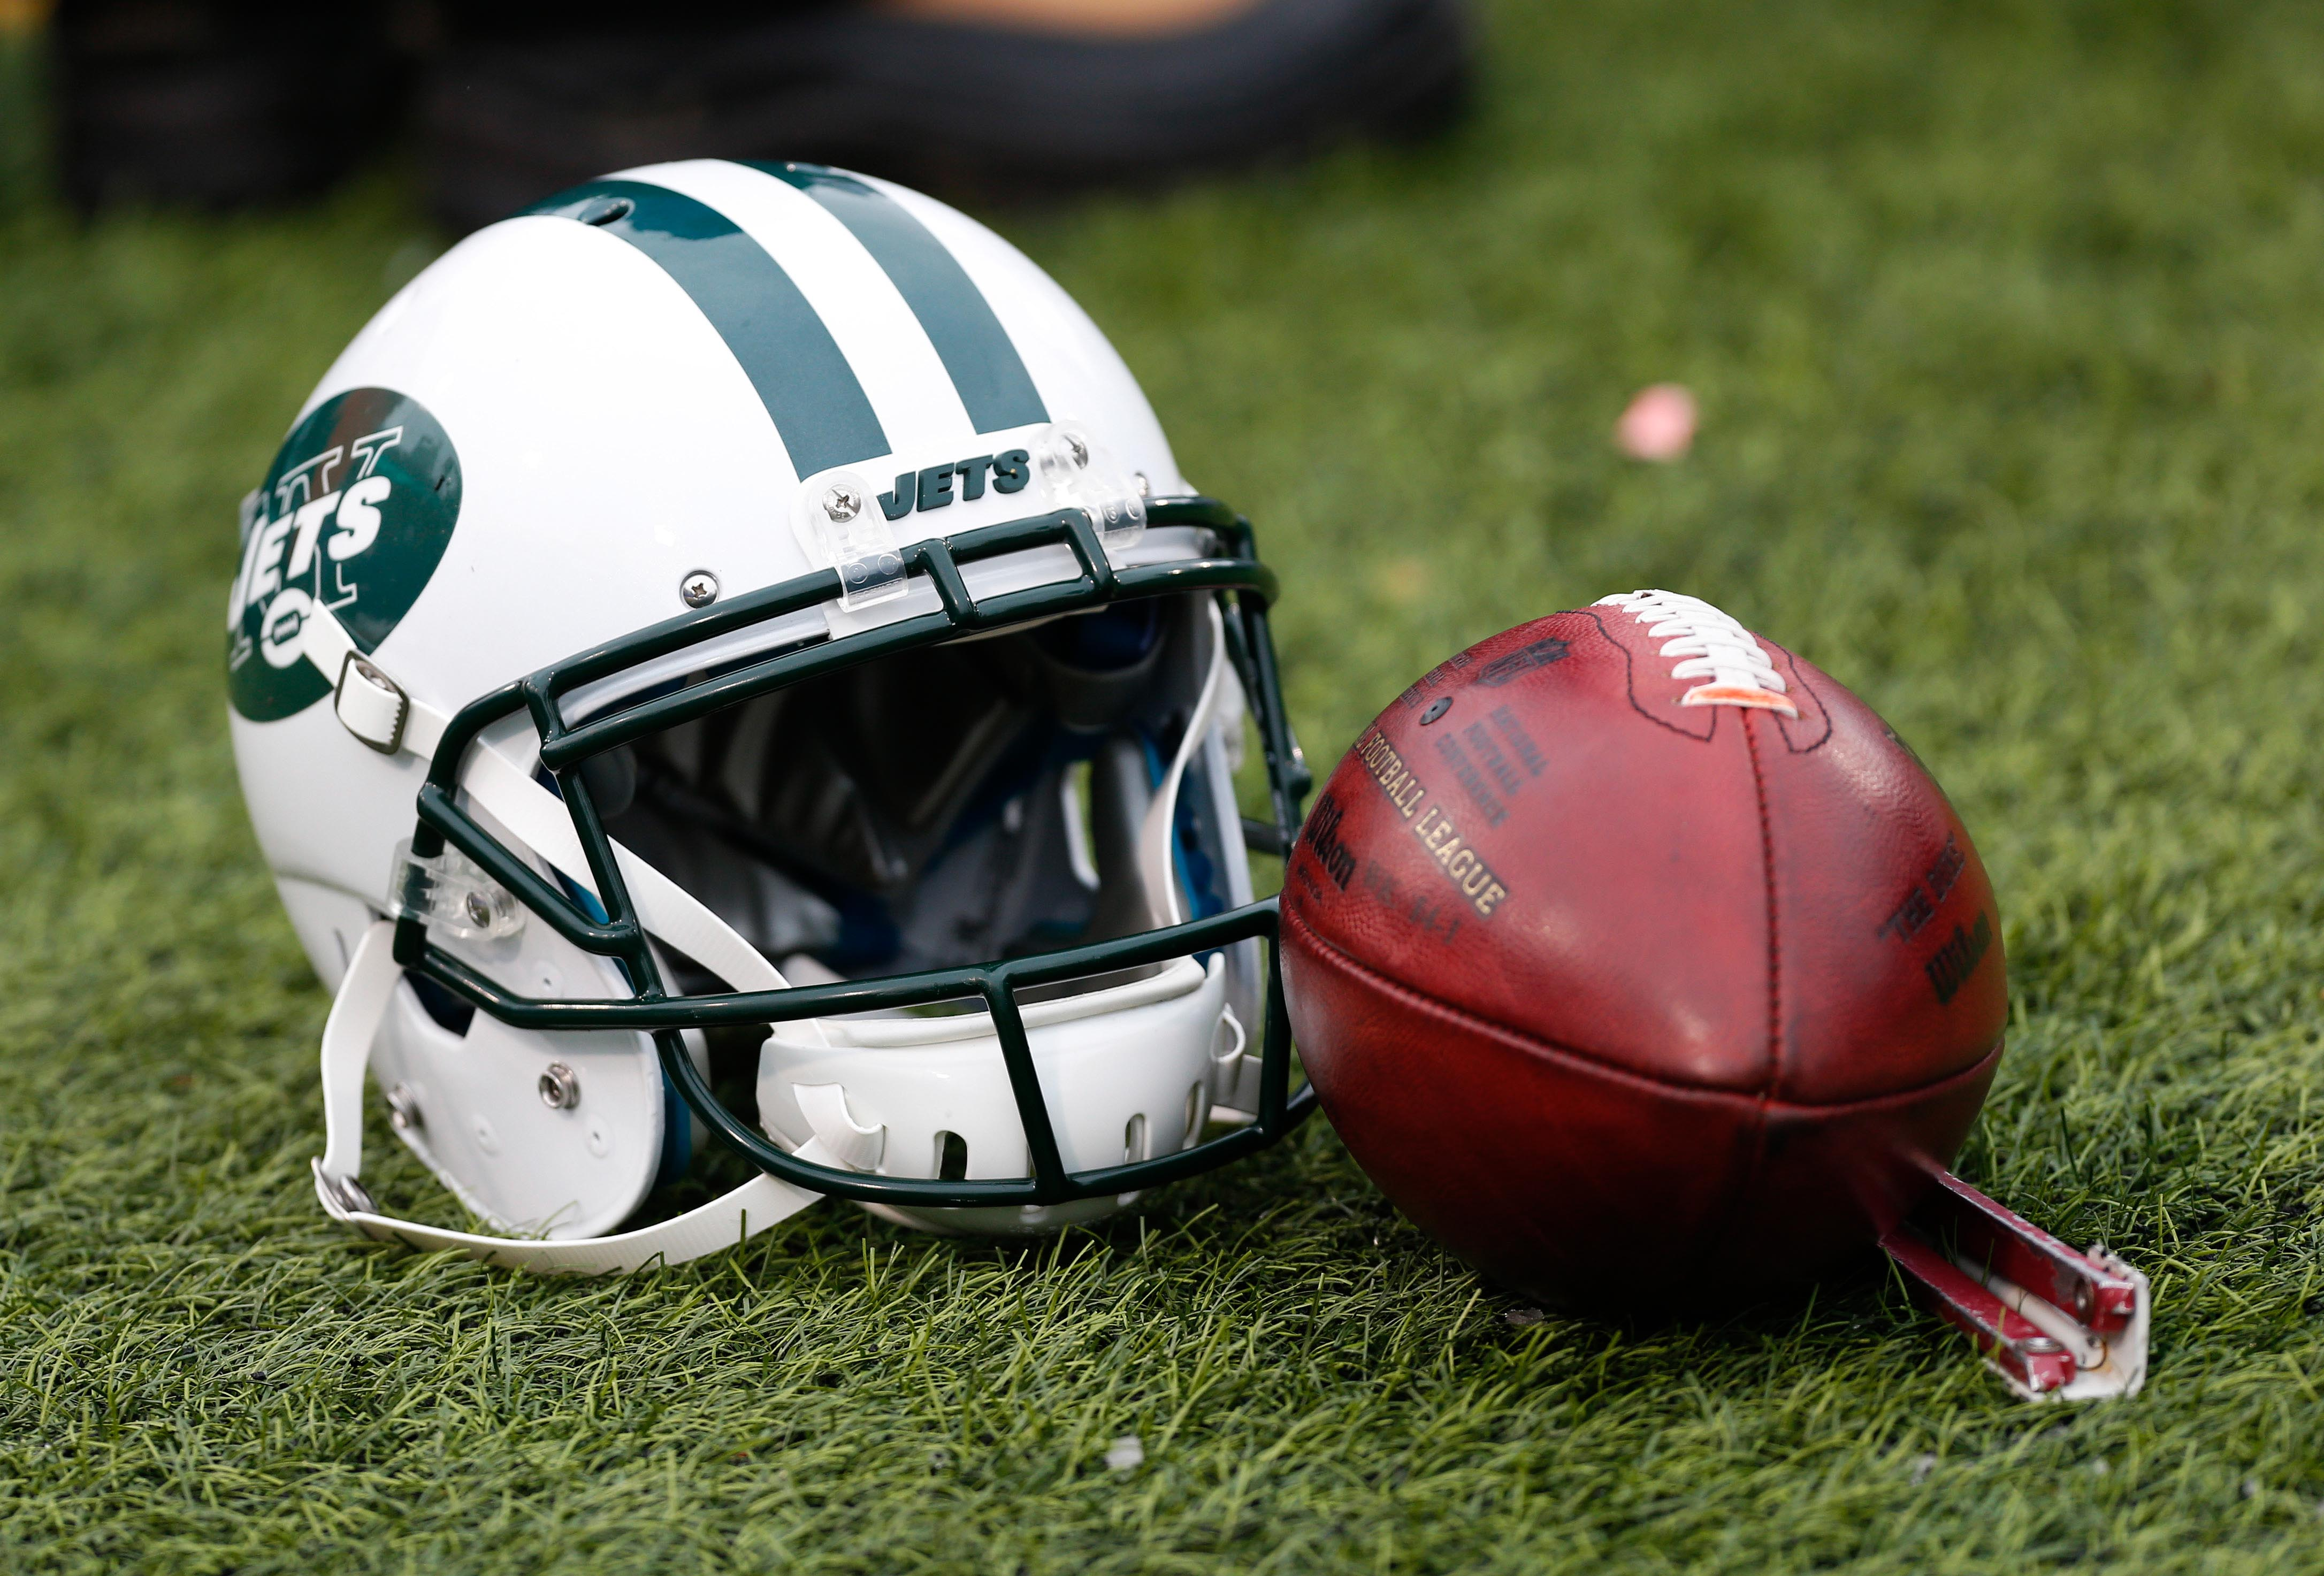 9044807-nfl-new-york-jets-at-buffalo-bills